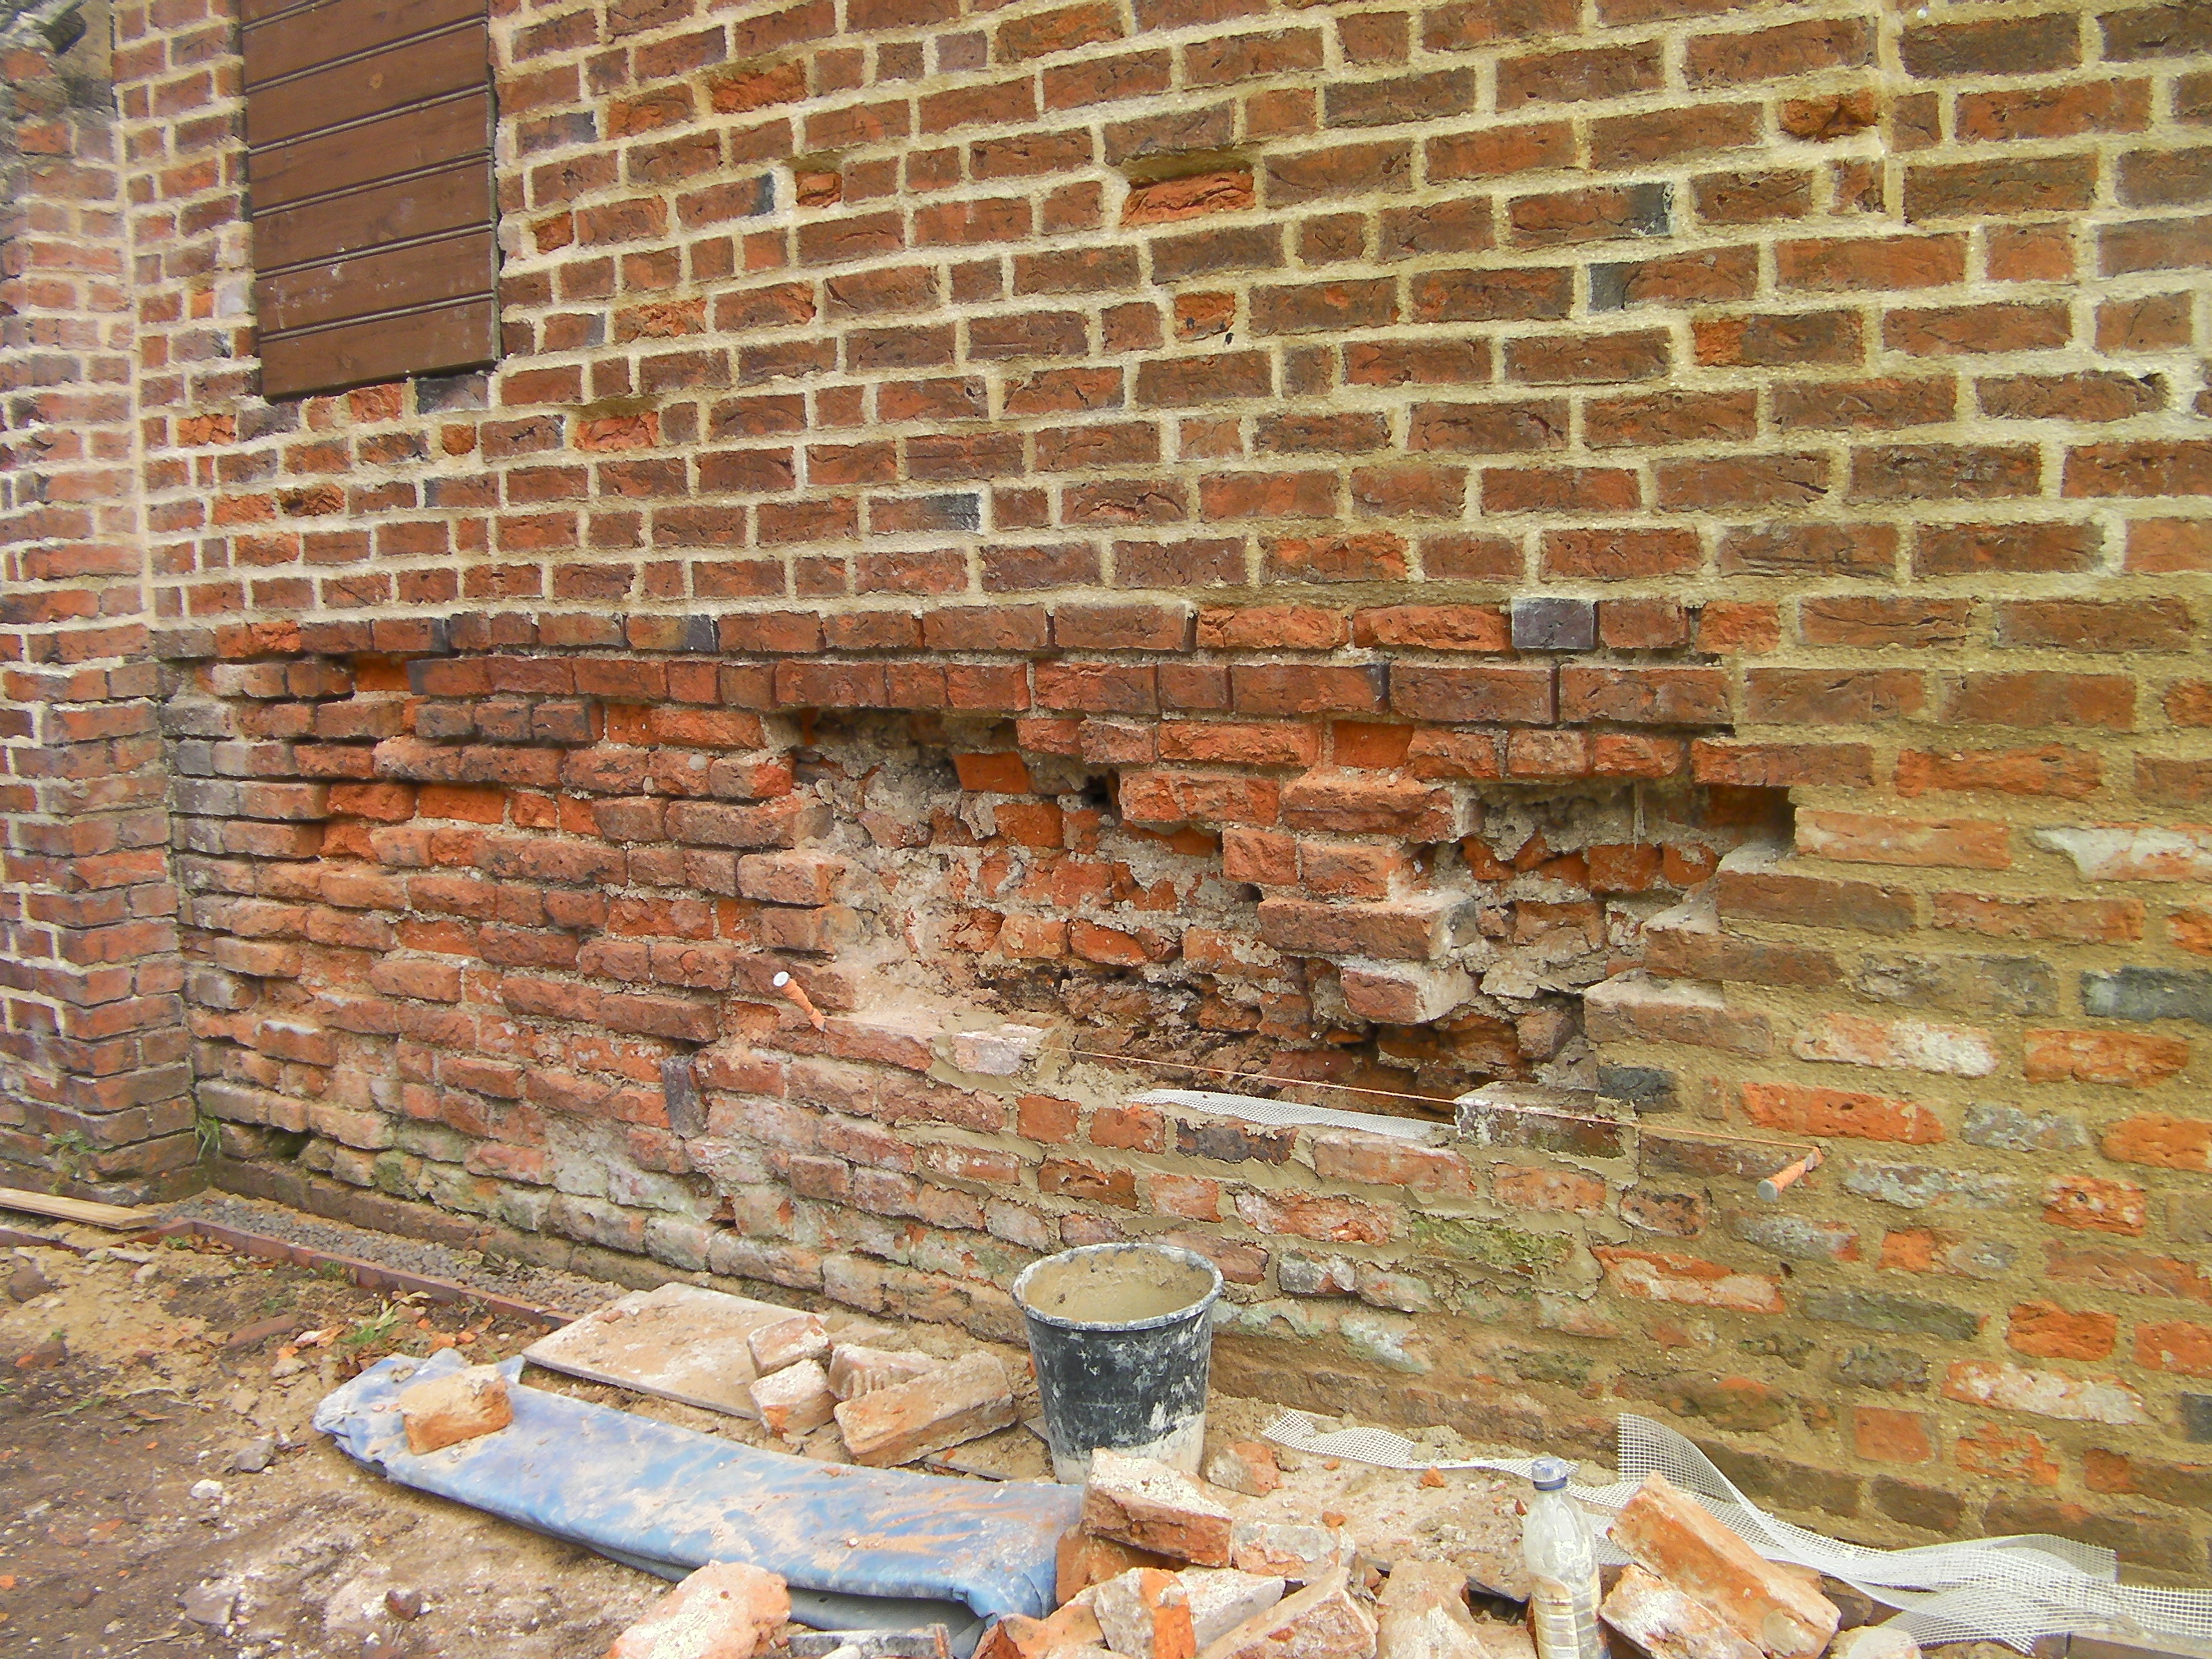 st astier lime mortar in brick work